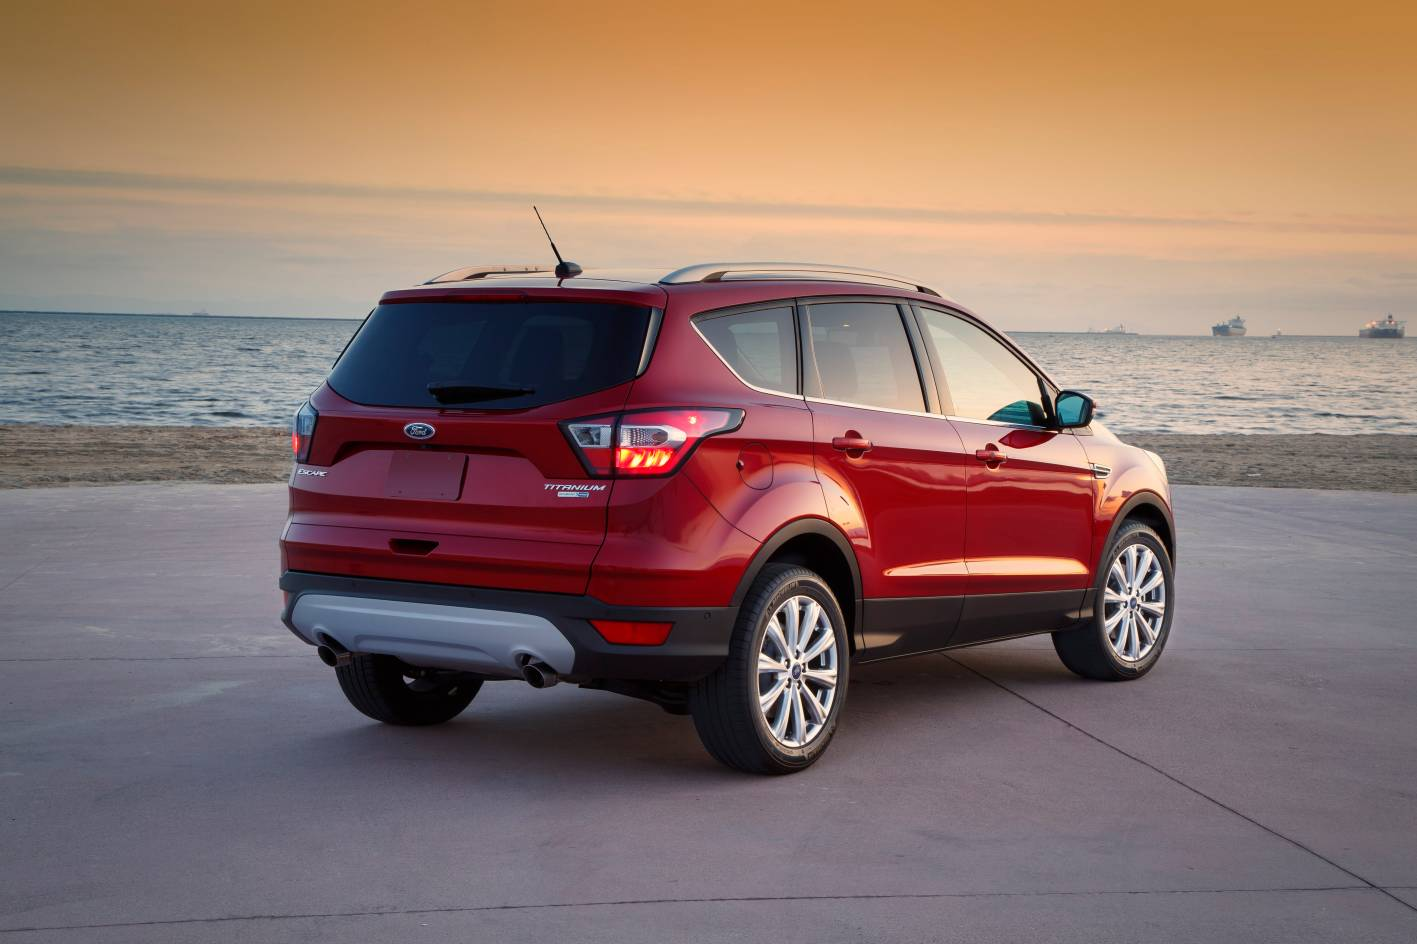 Ford Kuga 2017 Copper Pulse >> 2017 Ford Escape to replace Ford Kuga next year - ForceGT.com